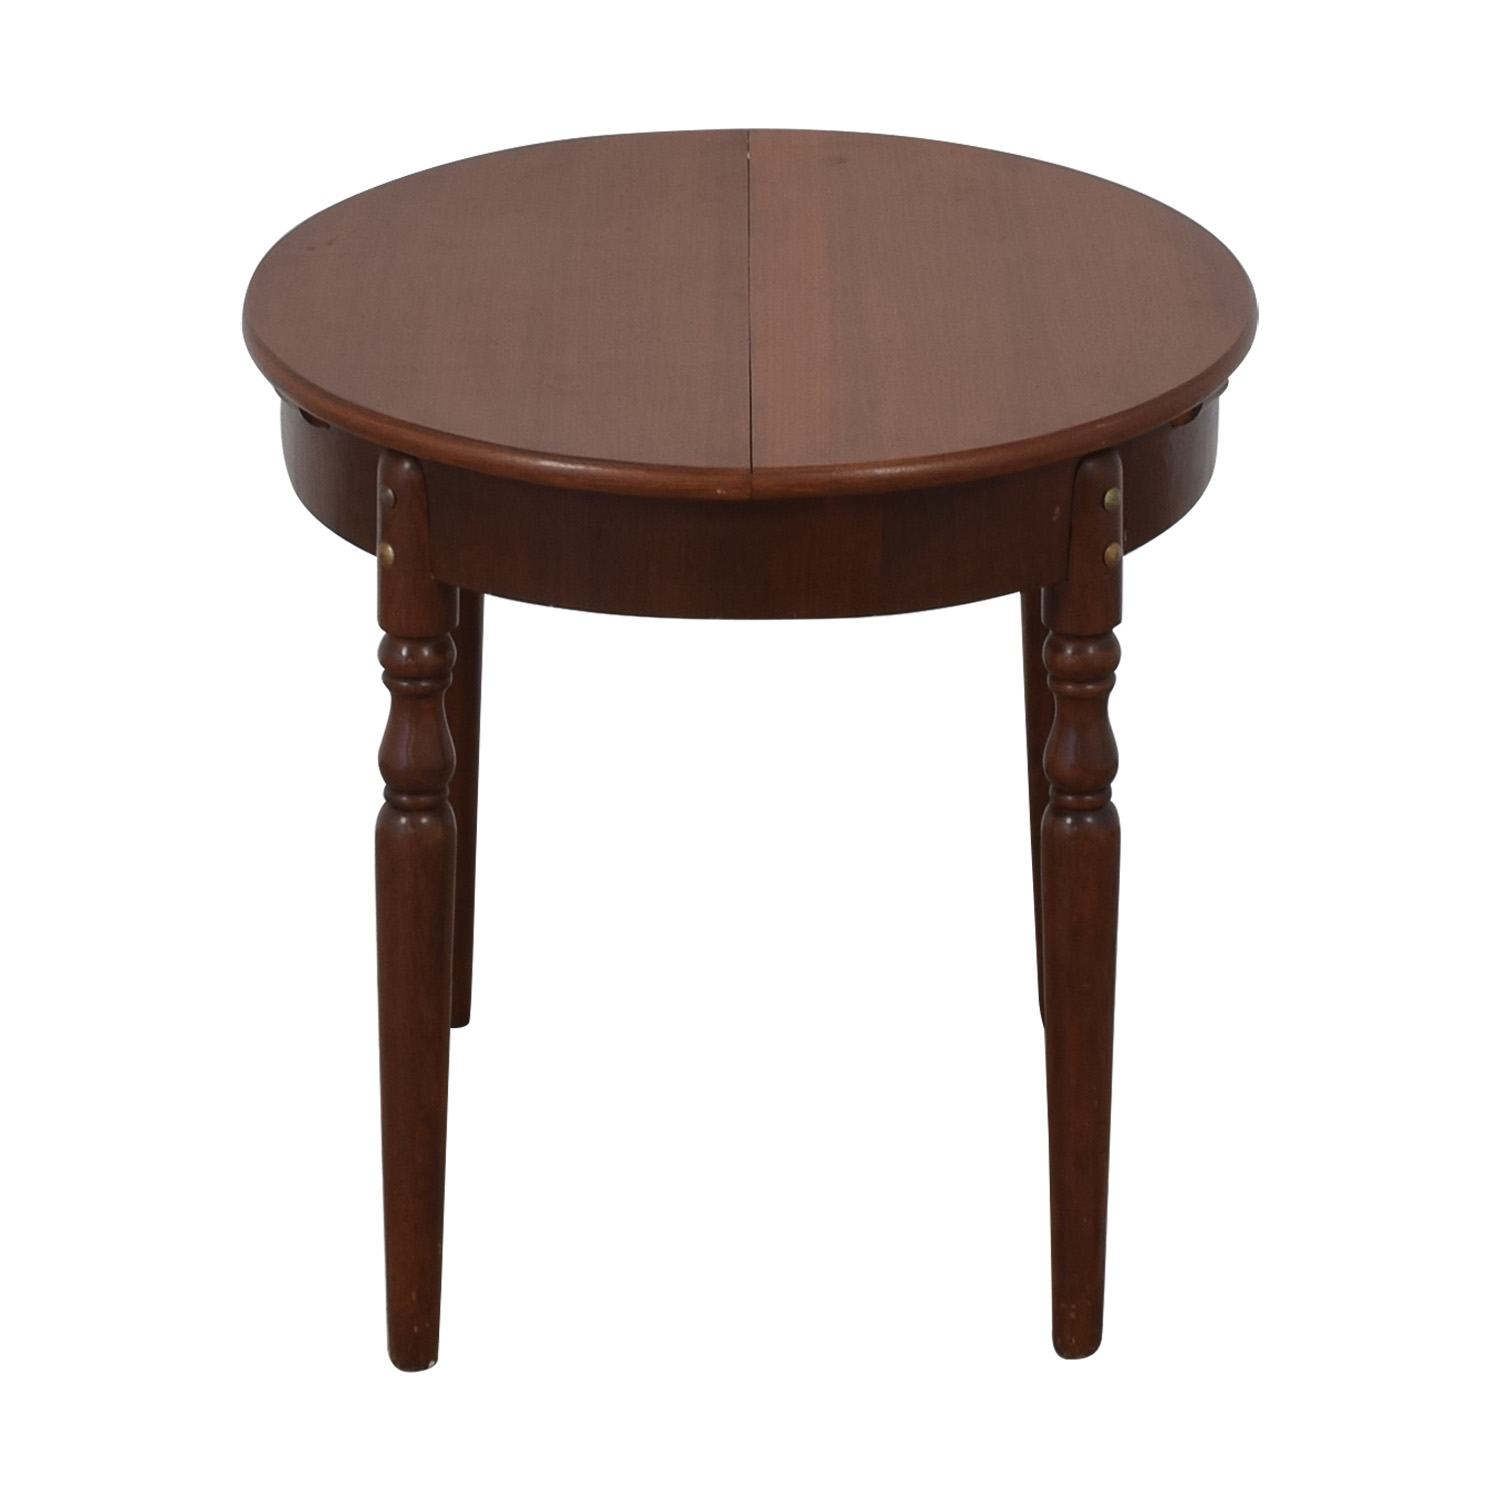 86% OFF   Vintage Round Extendable Table / Tables